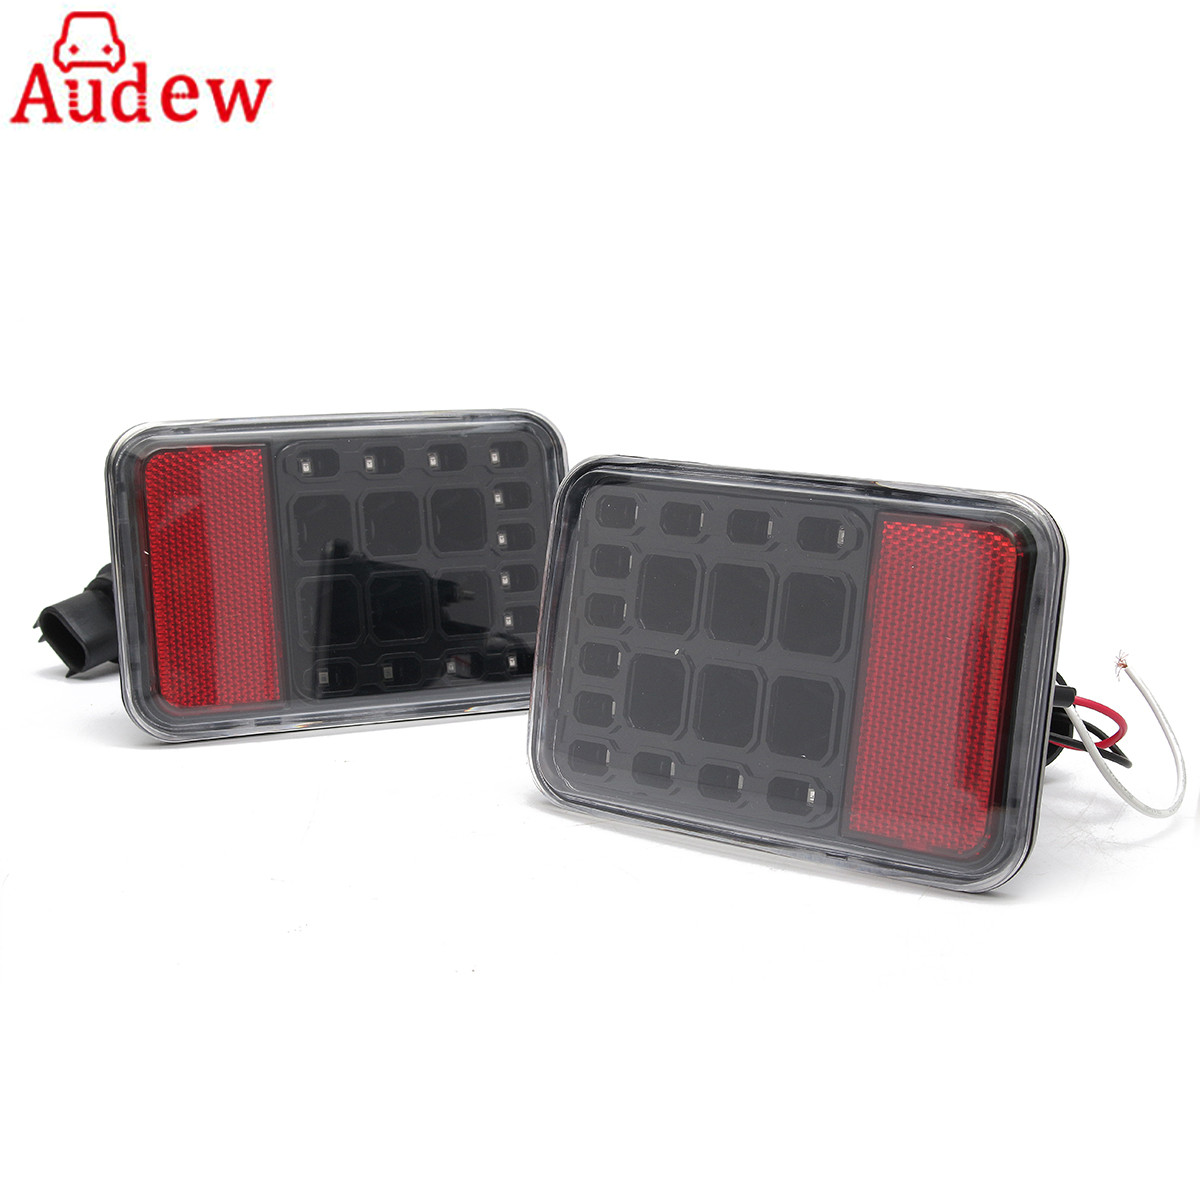 Pair Car LED Reverse Backup Lamp Rear Bumper Tail Light For Jeep/Wrangler/JK 2007-2016 4x4 4WD 12V LED Running Lights 2pcs brand new high quality superb error free 5050 smd 360 degrees led backup reverse light bulbs t15 for jeep grand cherokee